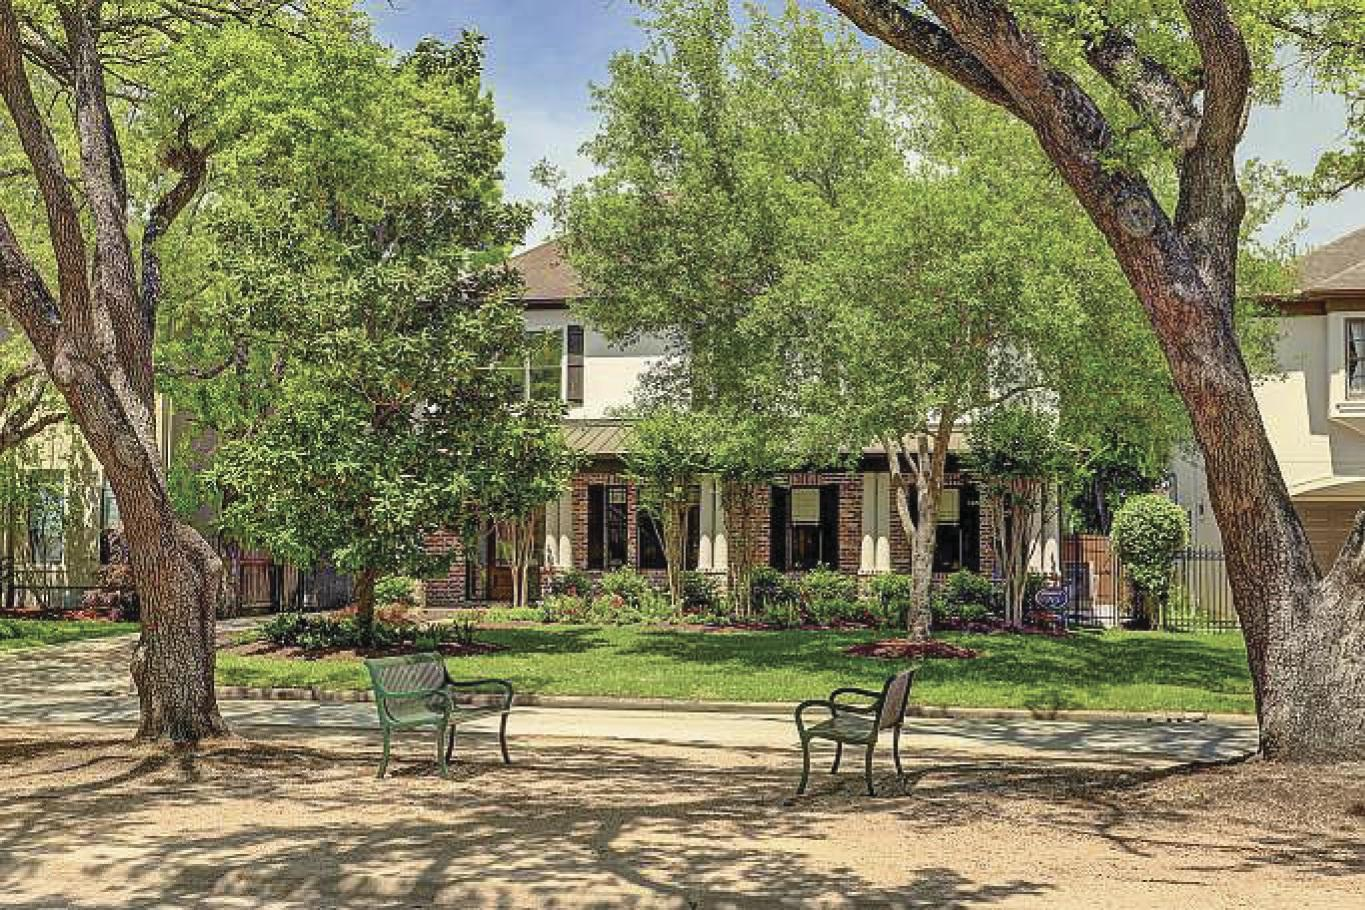 Bellaire showcase home is open today May 27